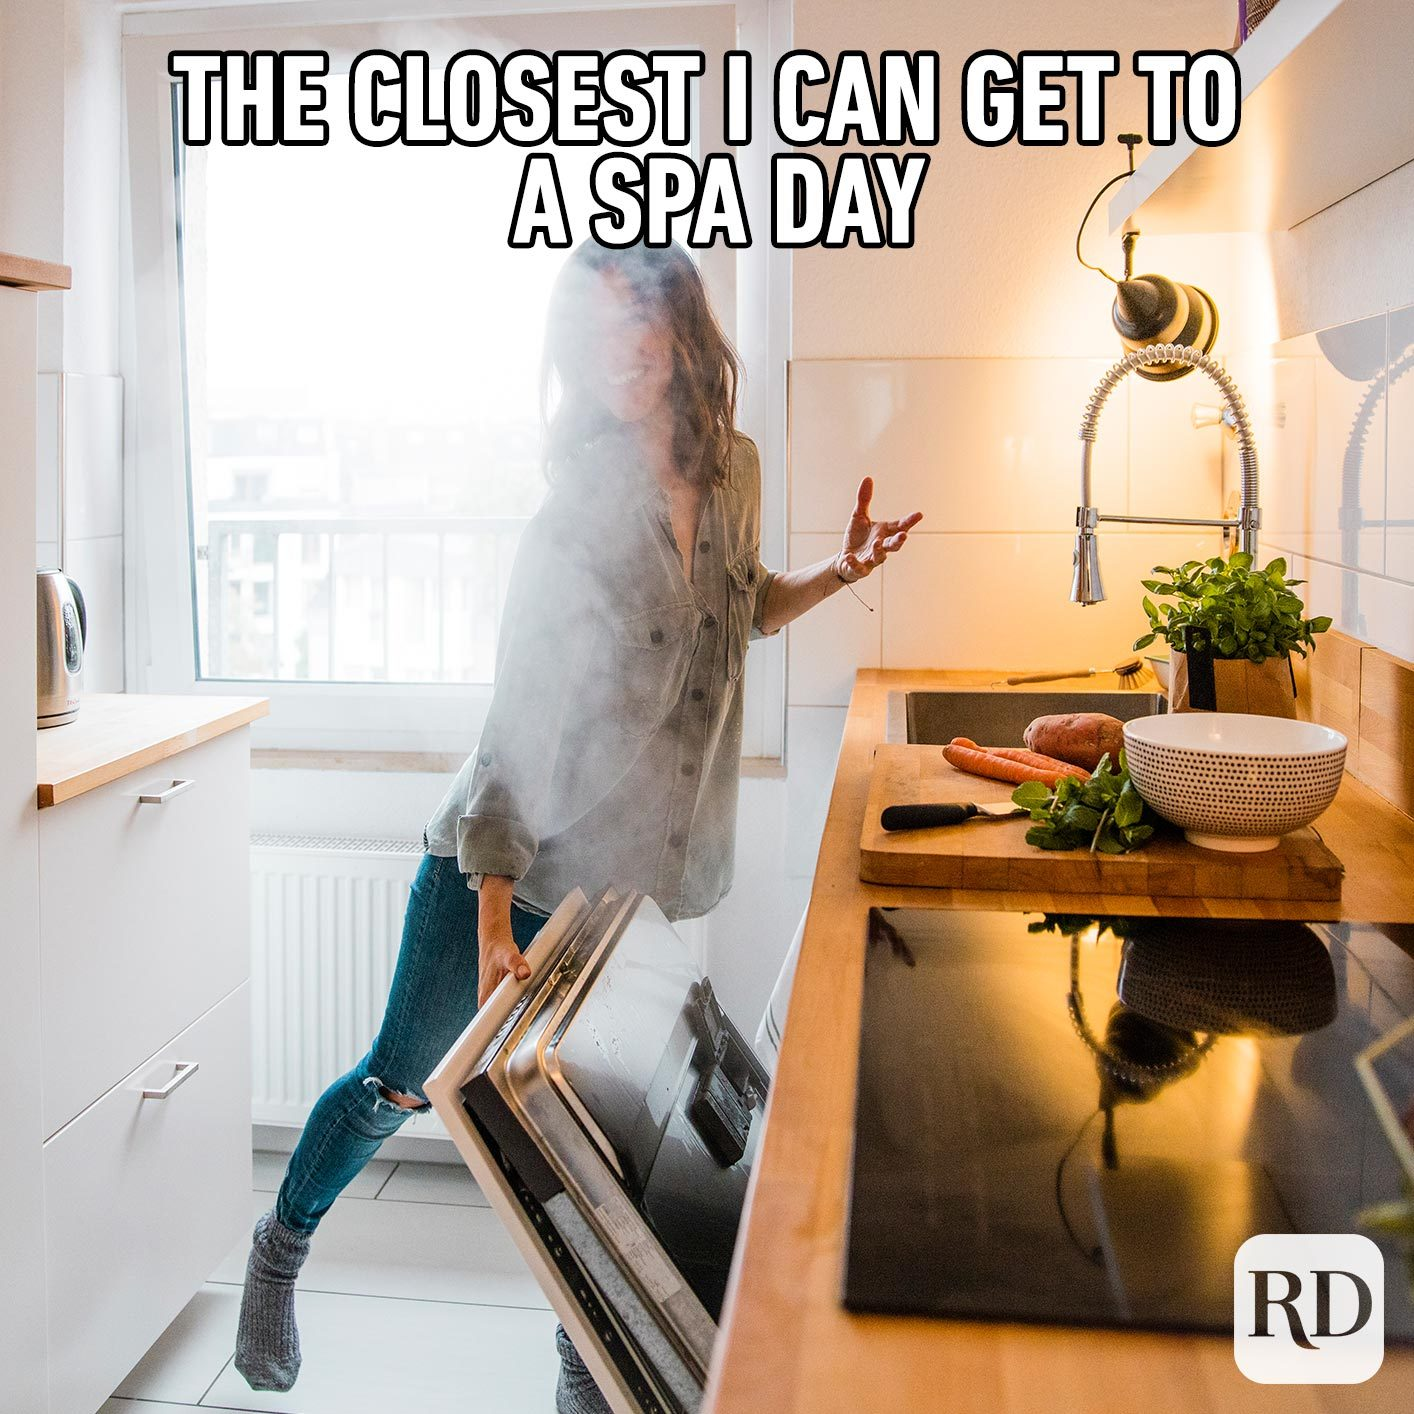 Woman being covered with steam from the dishwasher. MEME TEXT: The closest I can get to a spa day...